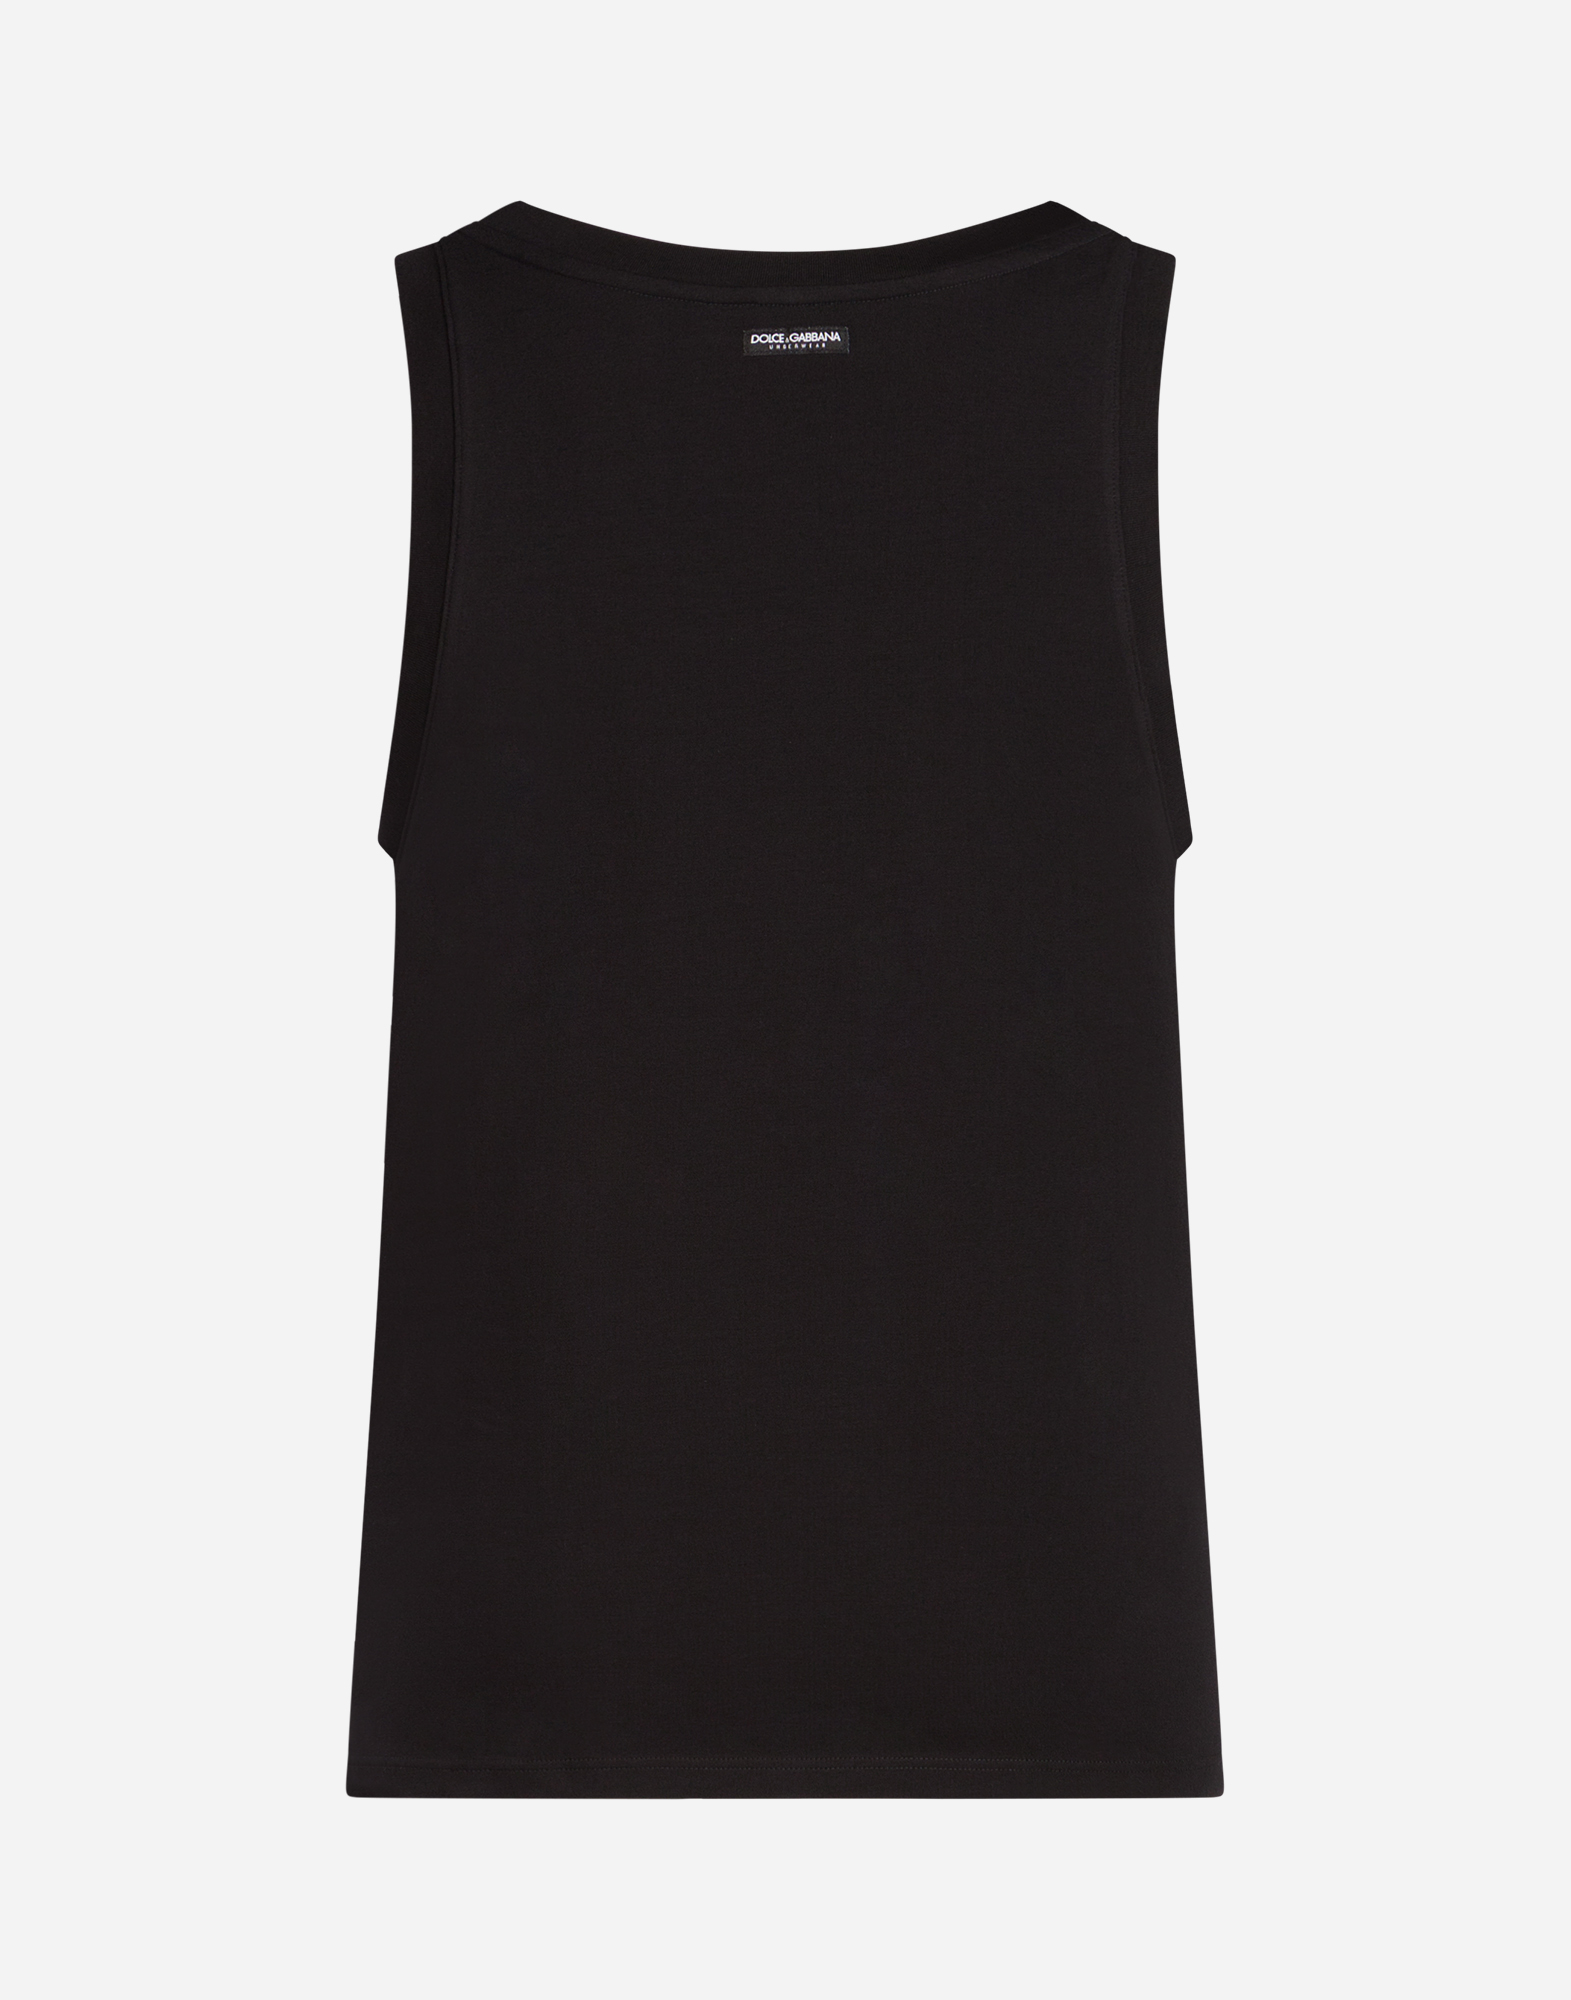 Dolce & Gabbana SET OF 2 COTTON TANKS